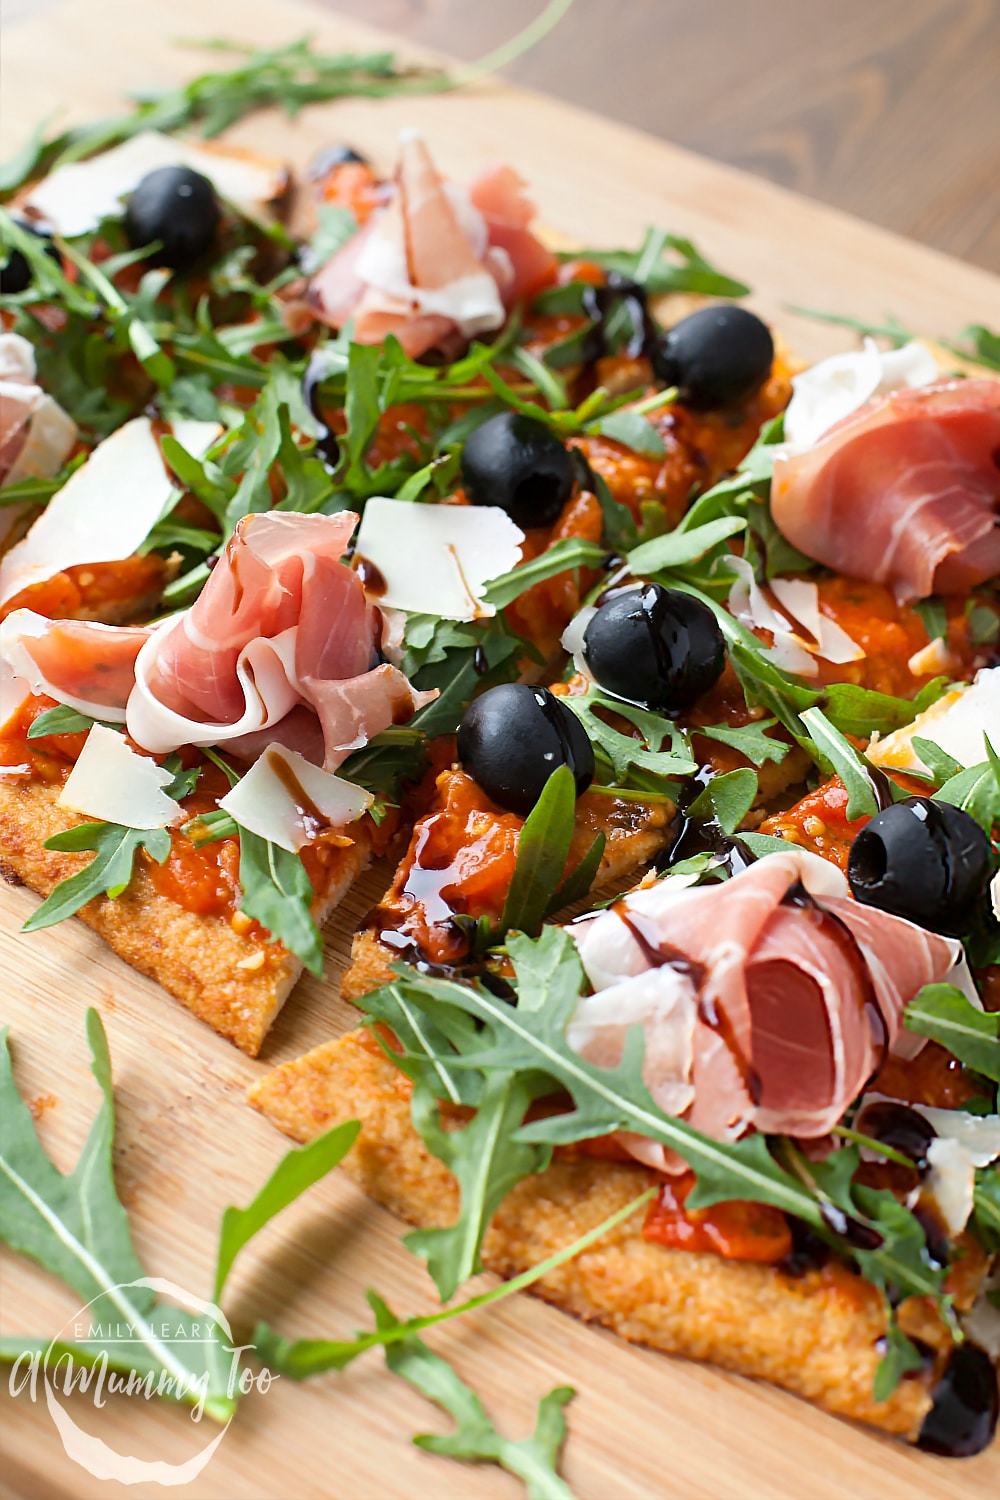 Grana Padano and Prosciutto di San Daniele cauliflower crust pizza - This recipe features delicious textures and flavours from two tasty Italian ingredients